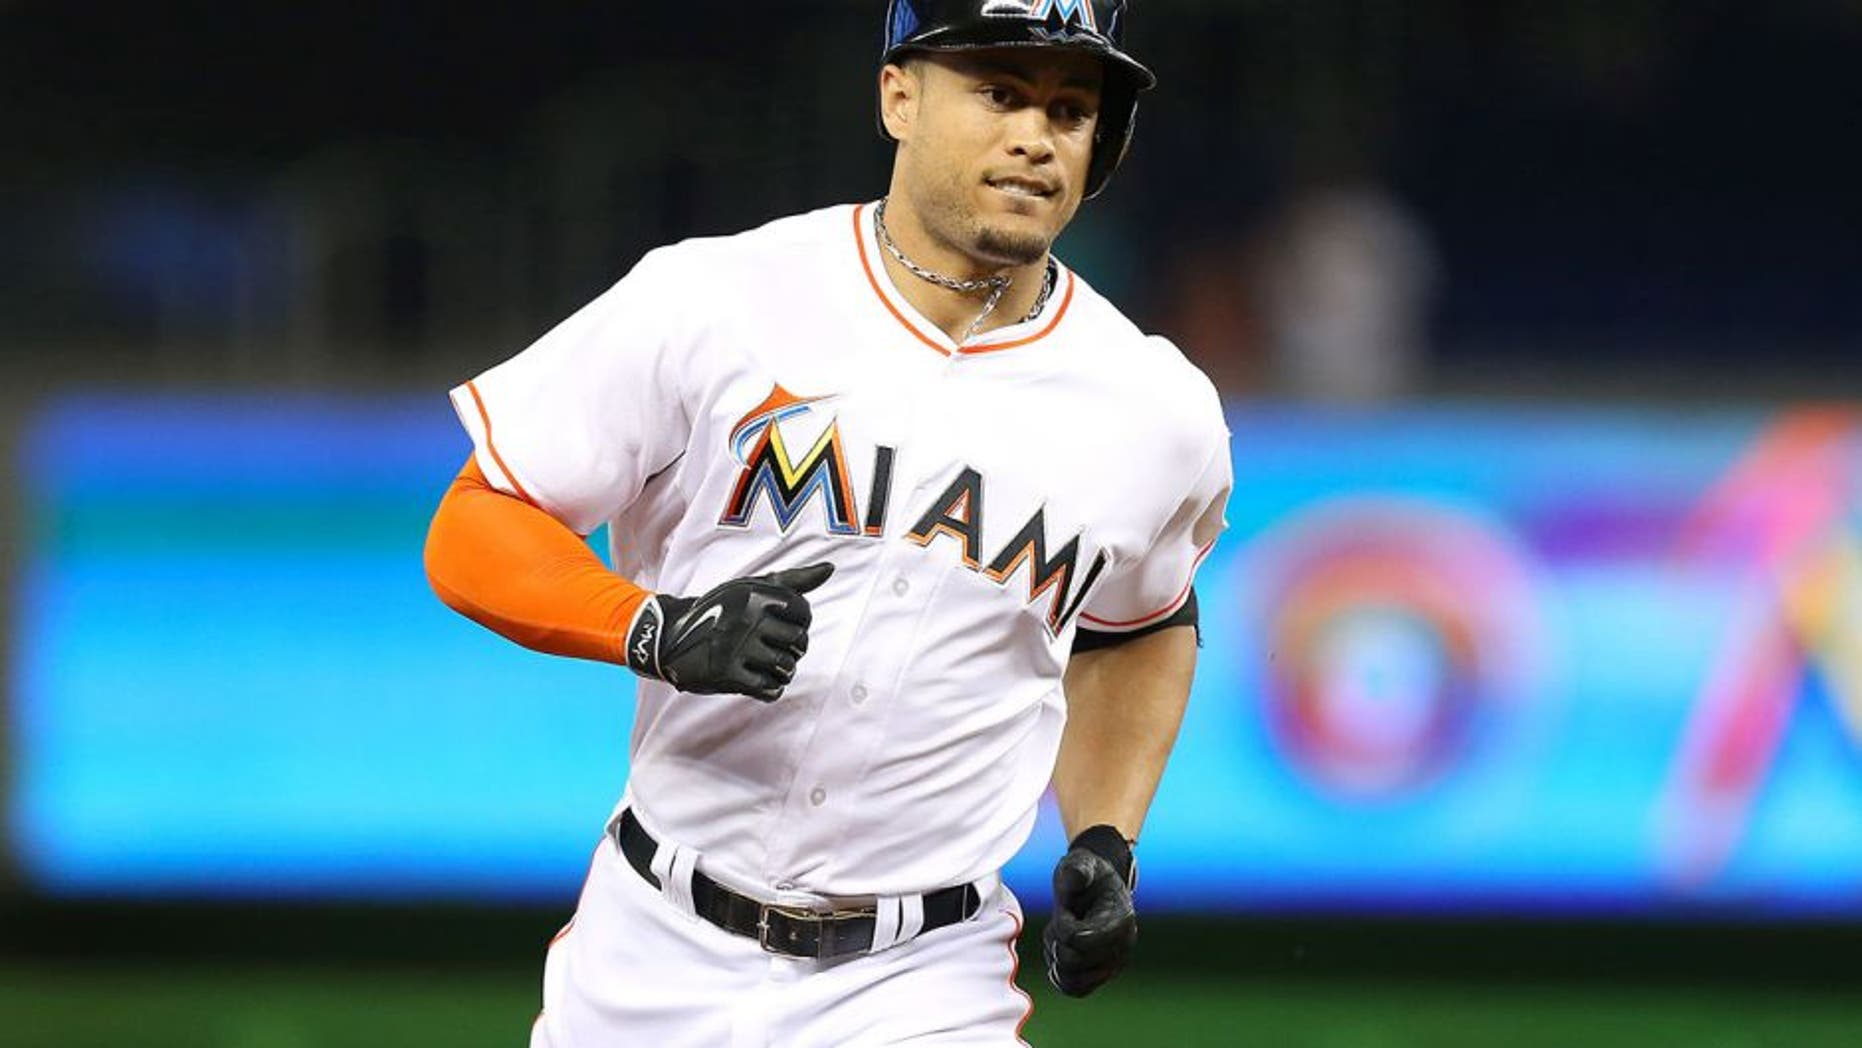 The Miami Marlins' Giancarlo Stanton rounds third after hitting a solo home run in the second inning against the St. Louis Cardinals on Wednesday, June 24, 2015, at Marlins Park in Miami. The Cards won, 6-1. (David Santiago/El Nuevo Herald/TNS via Getty Images)